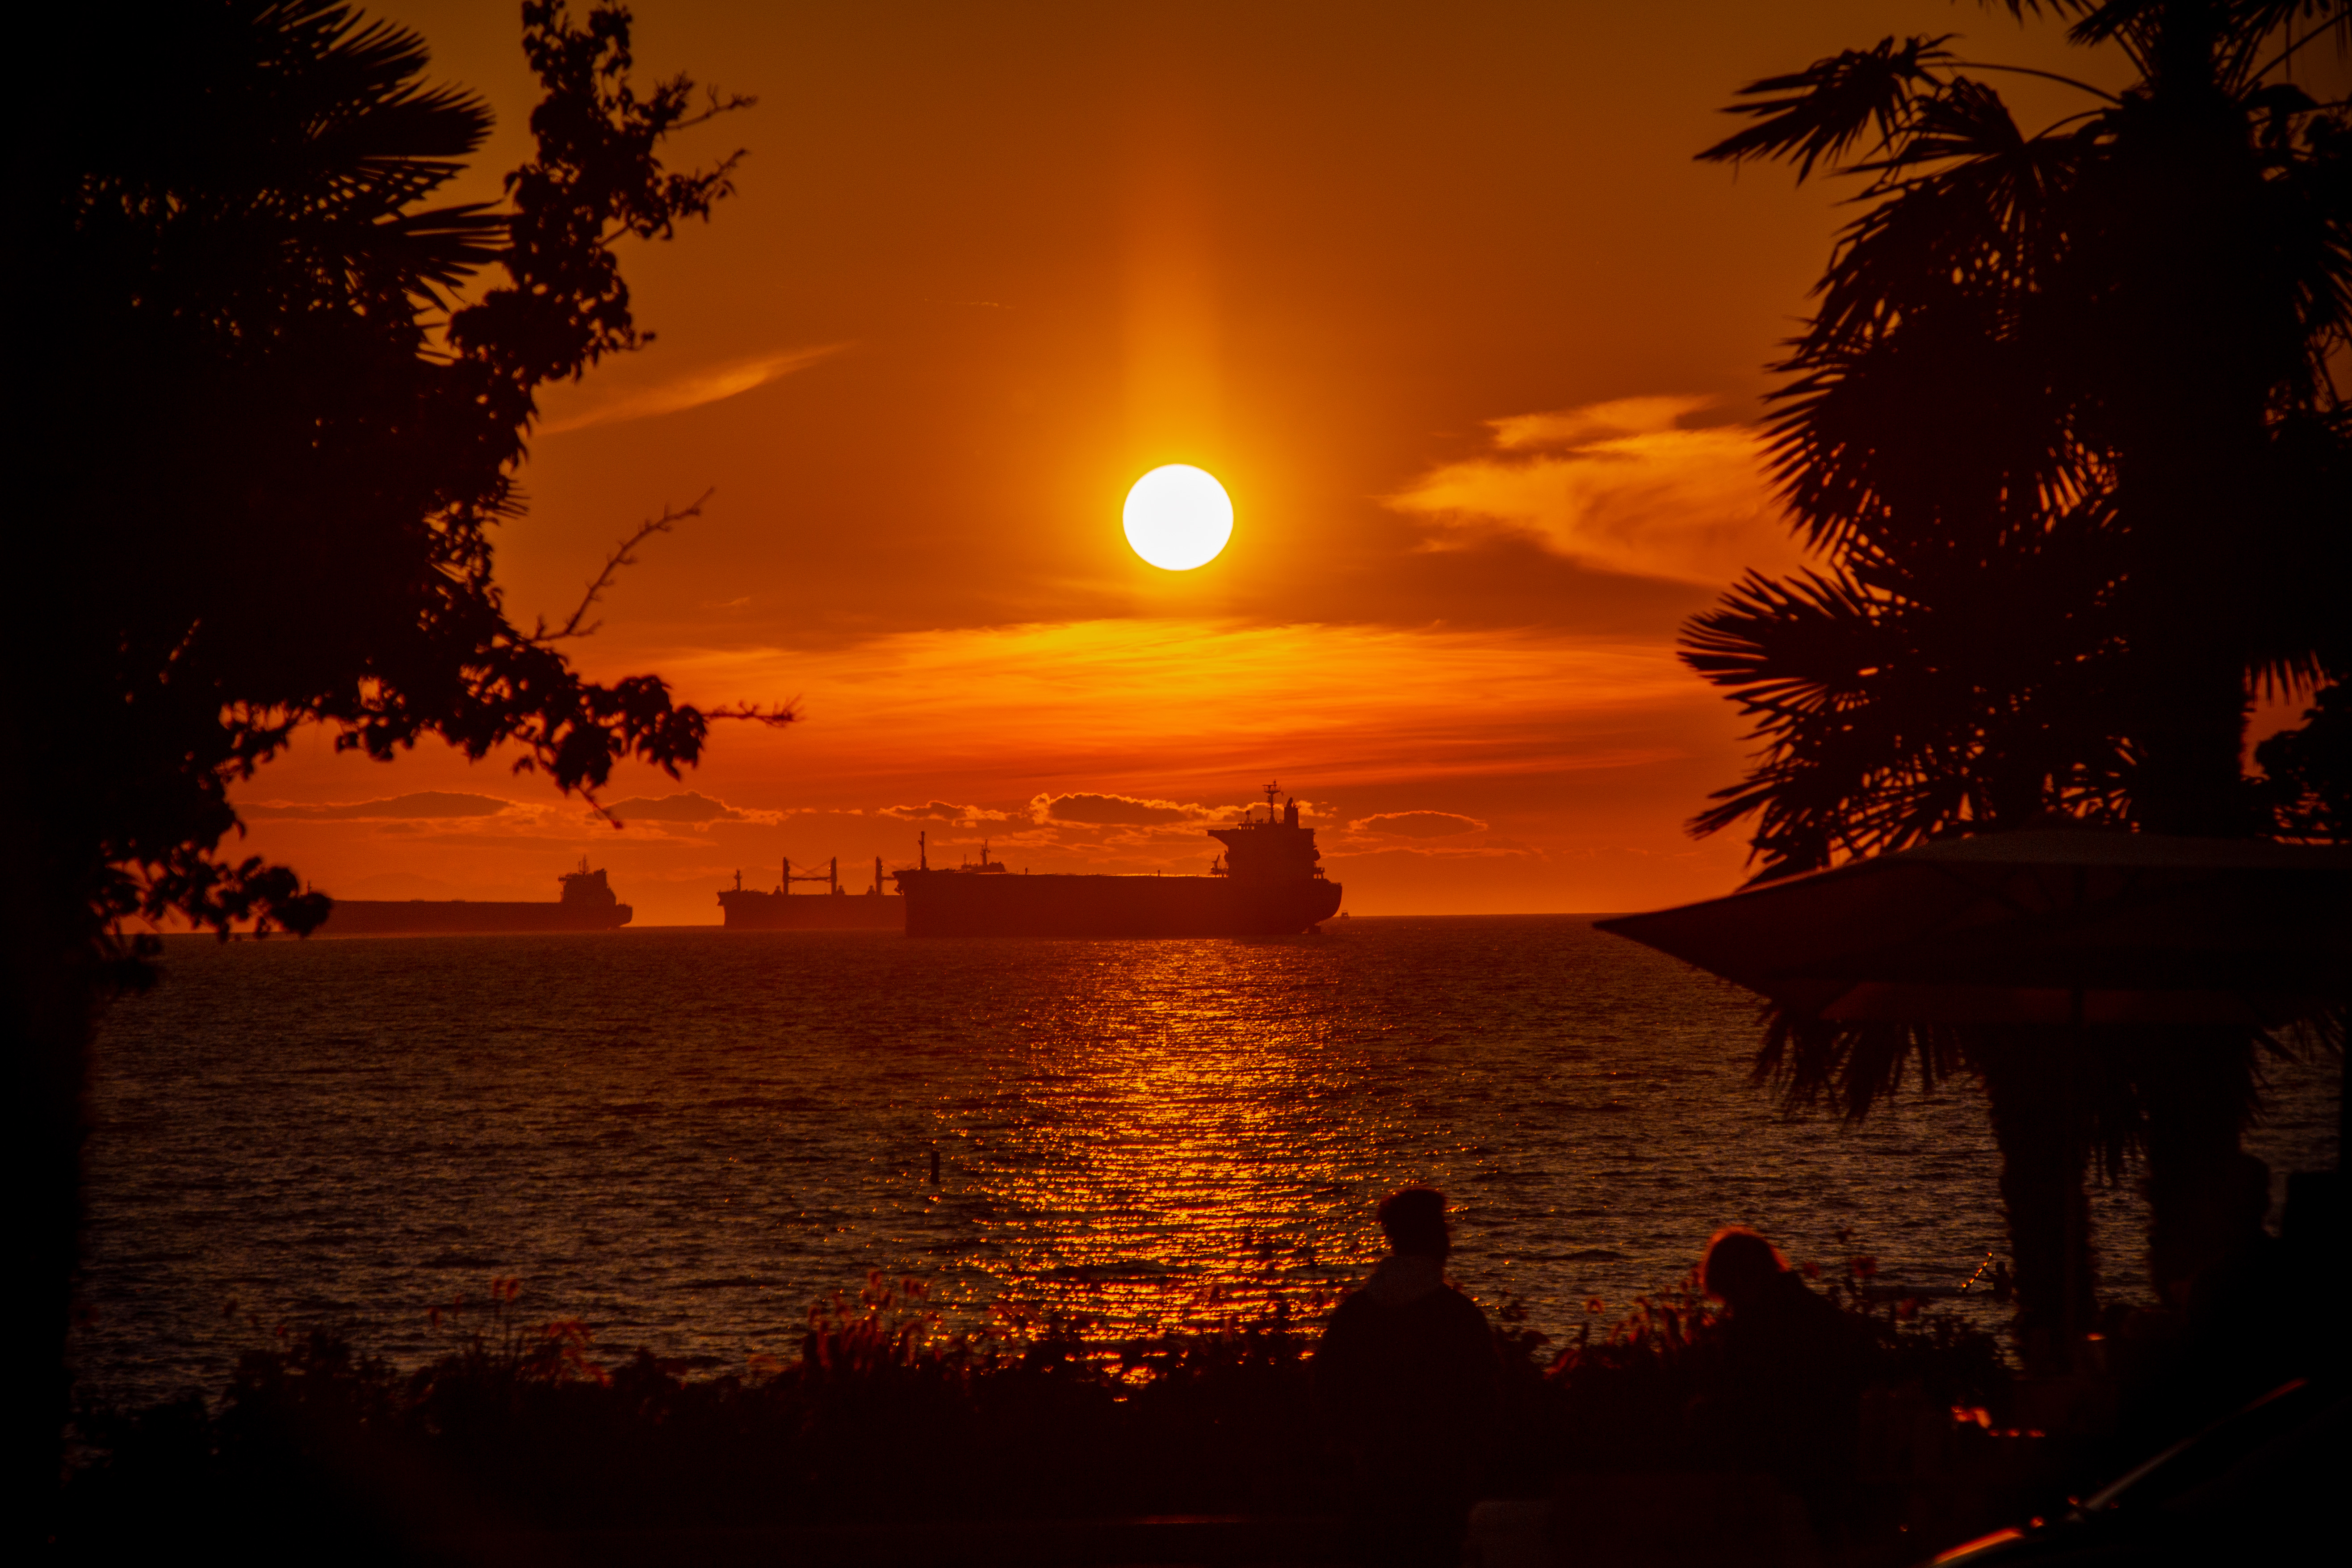 ship on body of water during sunset